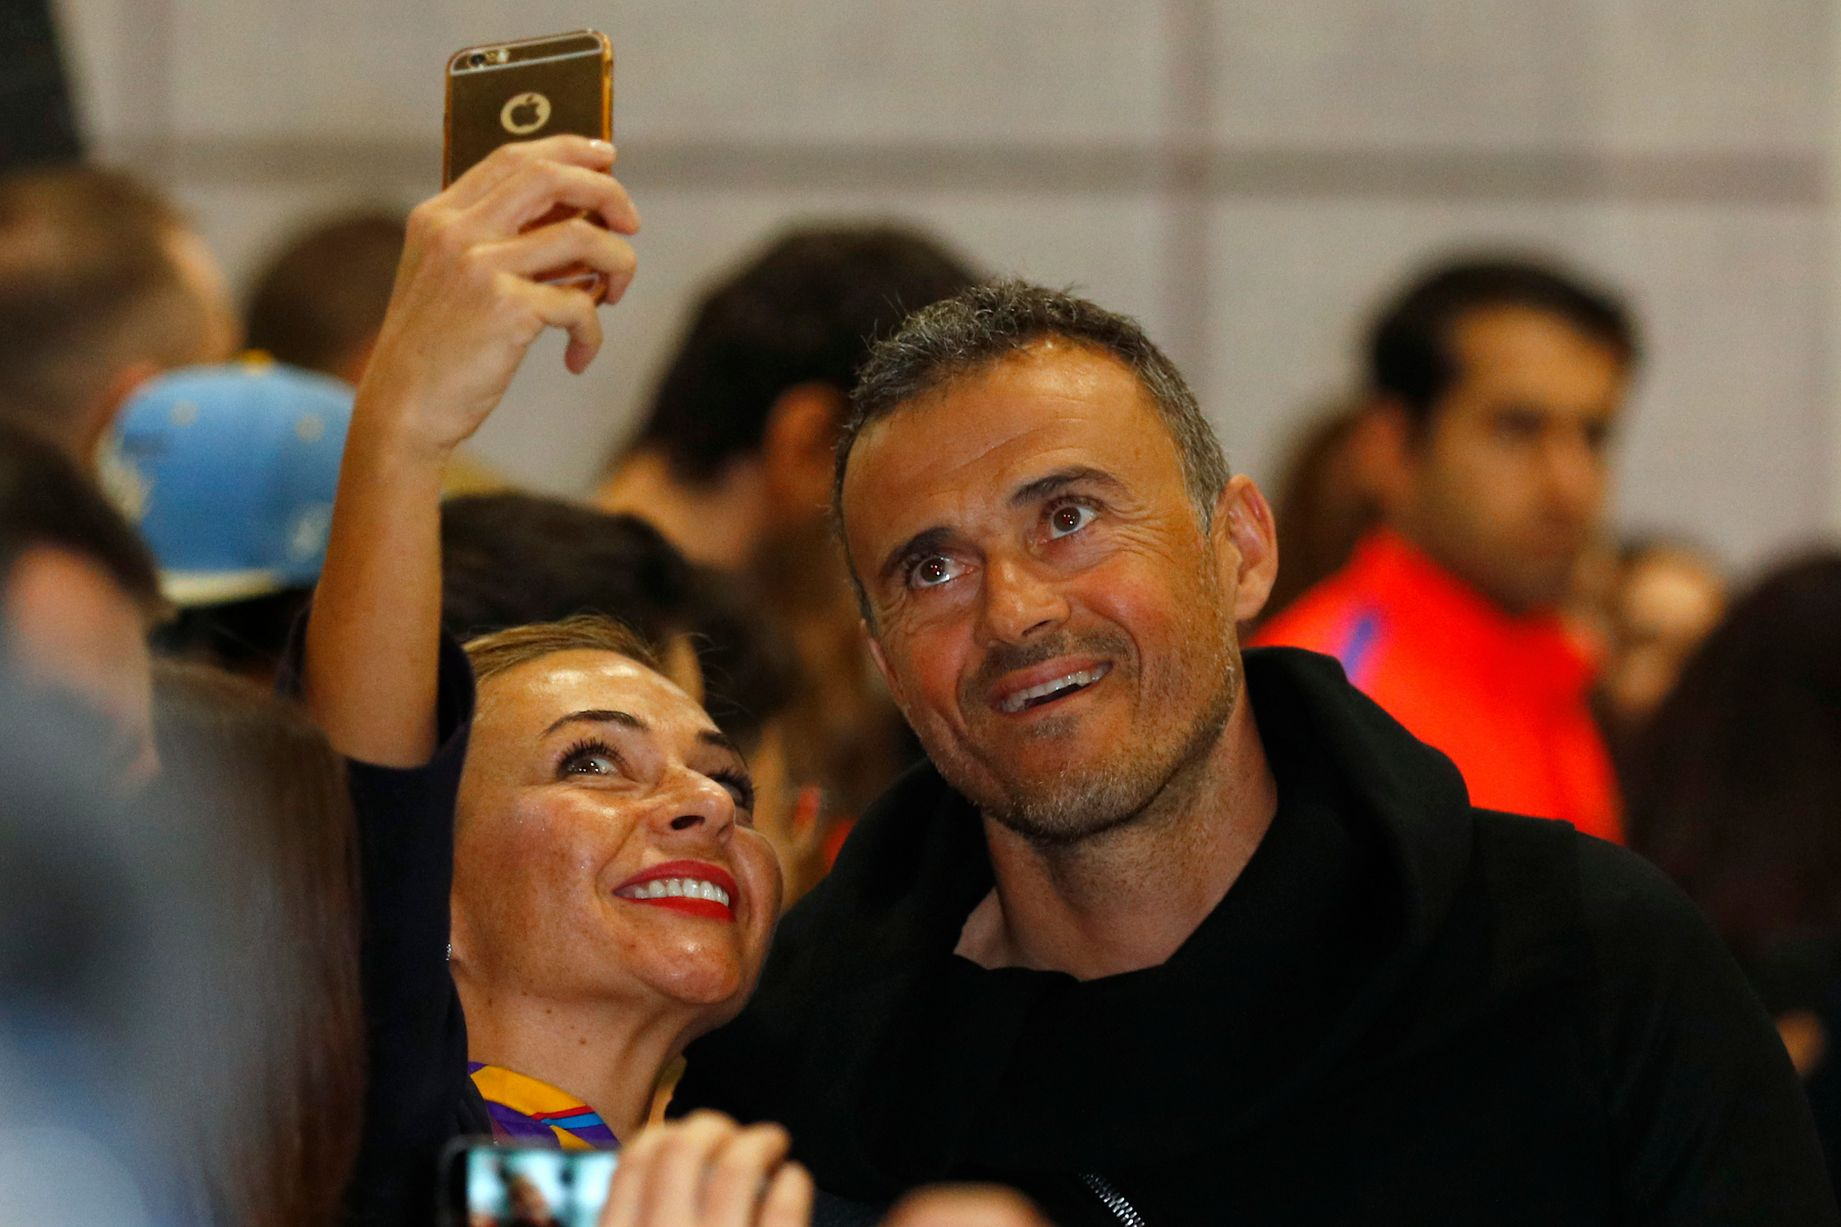 Luis Enrique poses for a photo with a fan as he arrives at Manchester Airport